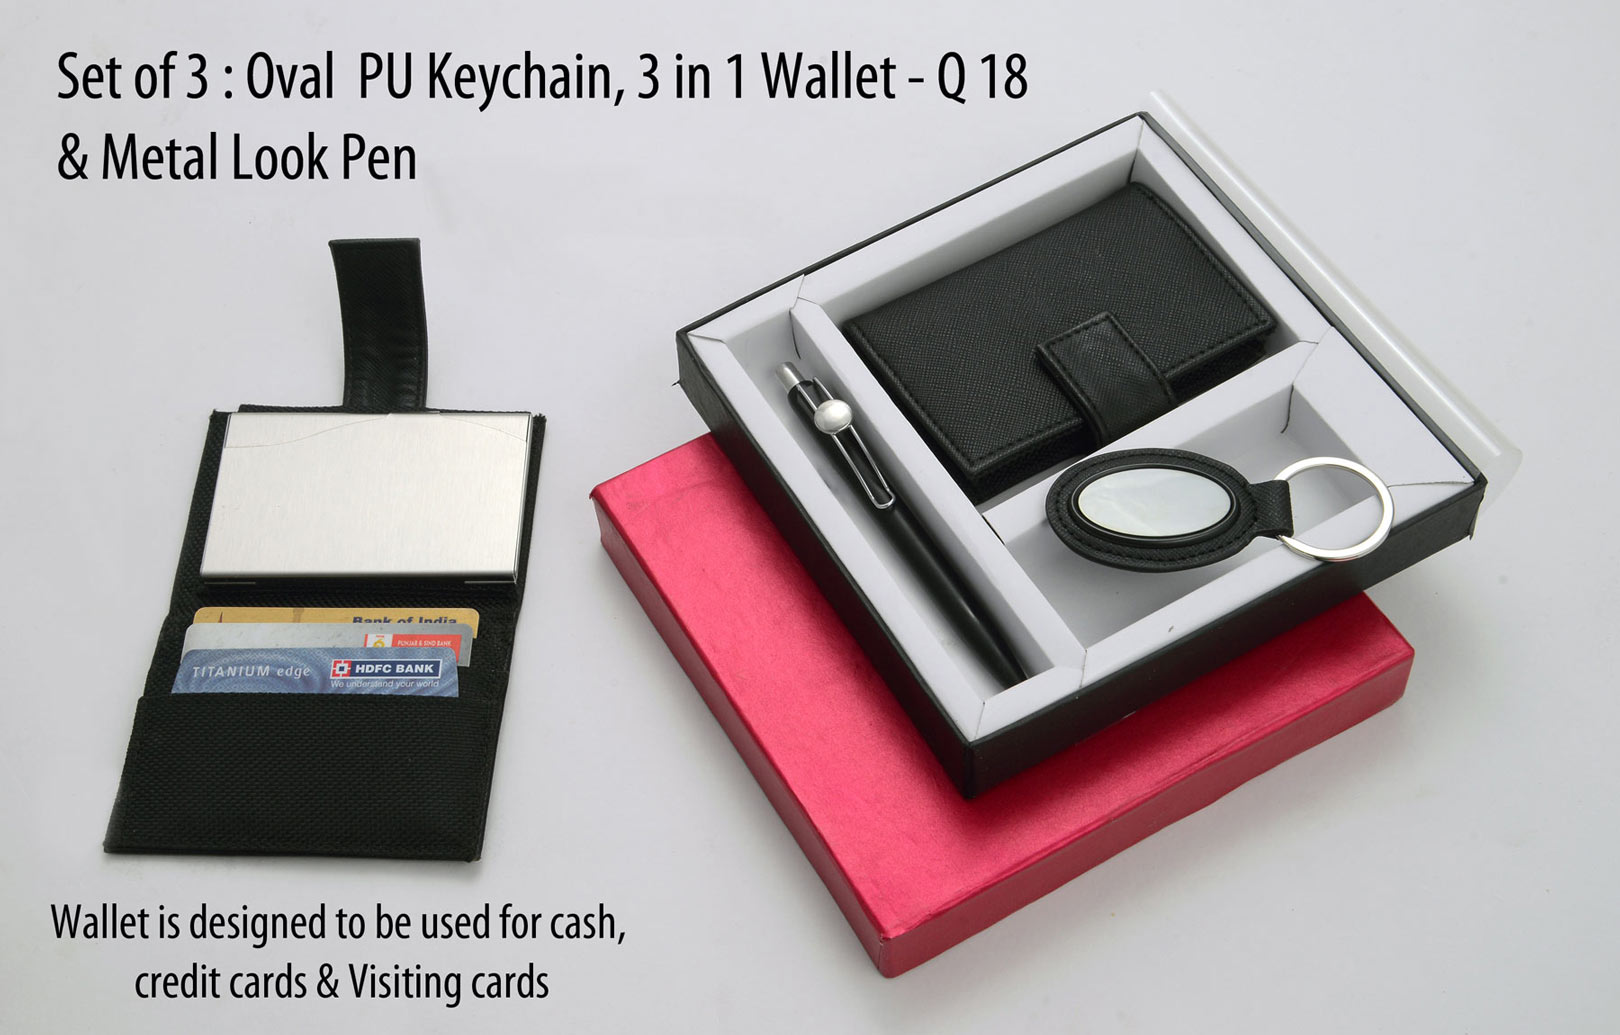 Q18 - Set of 3 : Oval PU Keychain, 3 in 1 wallet (For cash, cards and visiting cards) & Metal look Pen